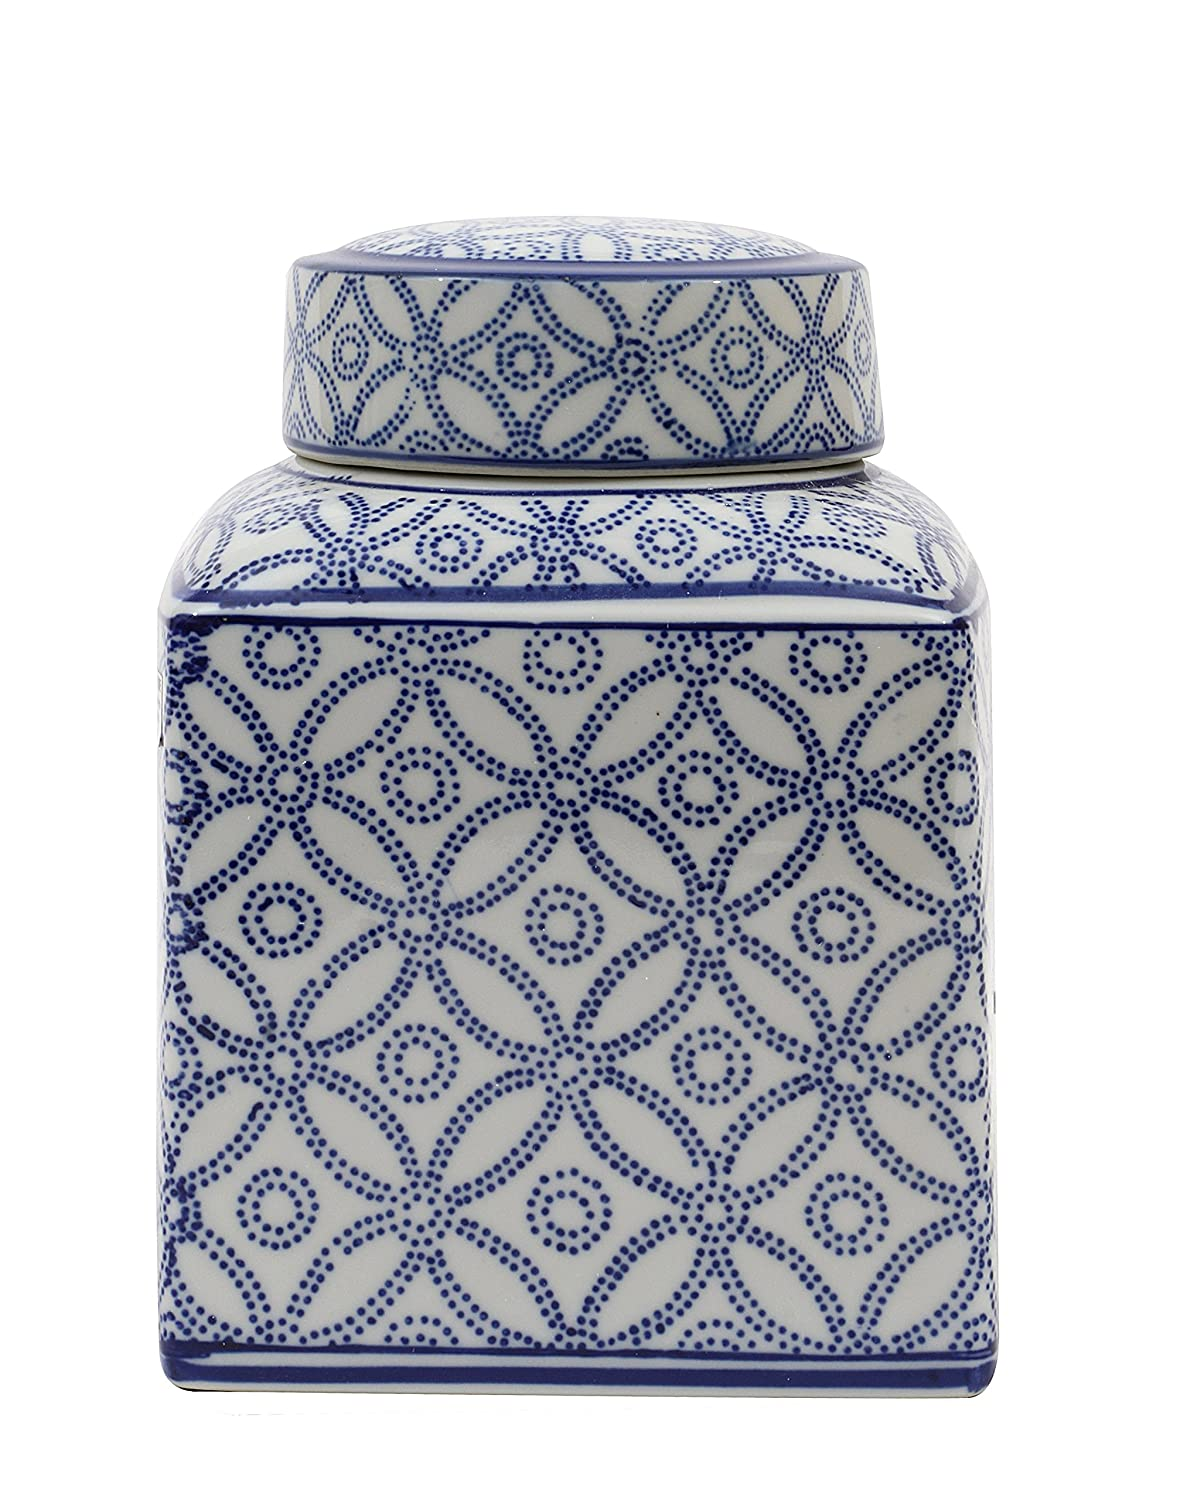 Small Square Blue and White Ceramic Ginger Jar with Lid